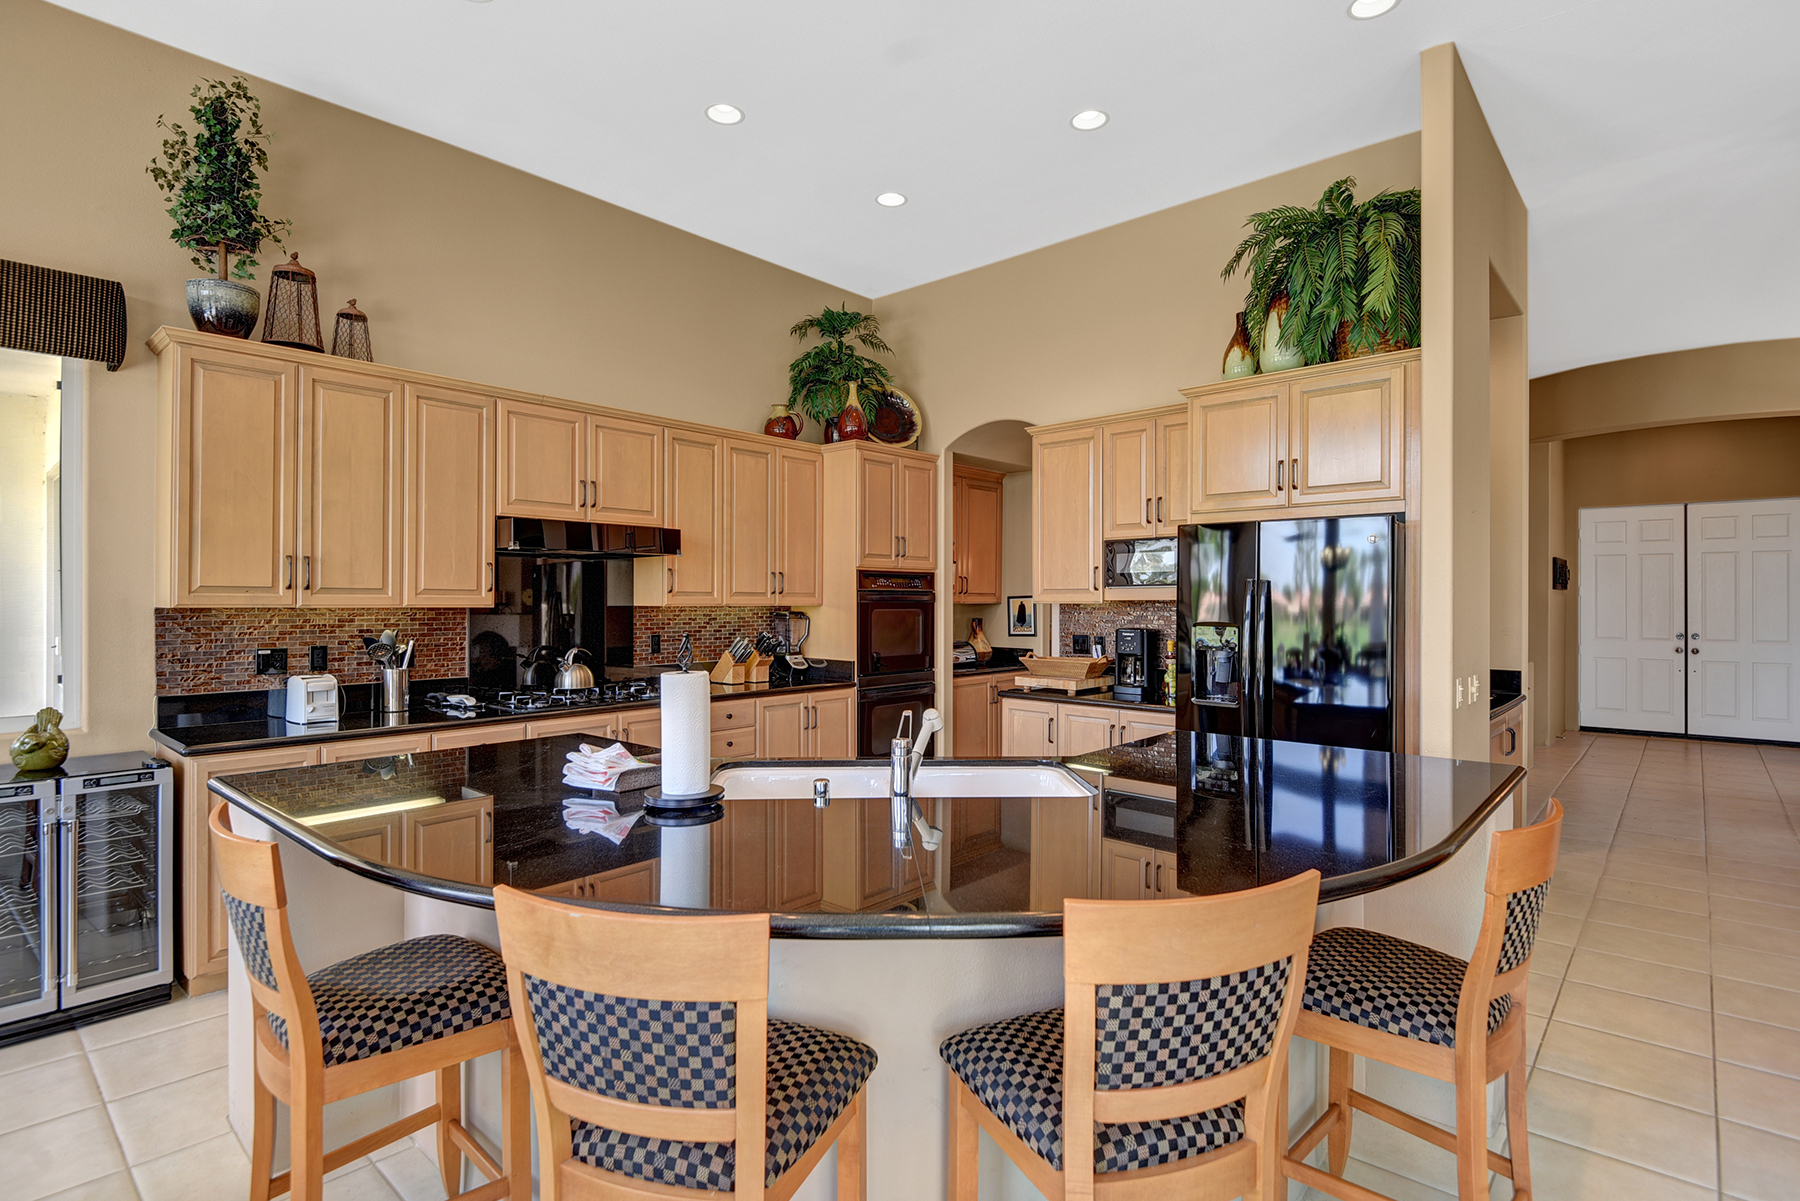 A87DED3A-A156-EE3C-5E8BA4A3AC15D36A-KITCHEN OVER ISLAND RS.jpg